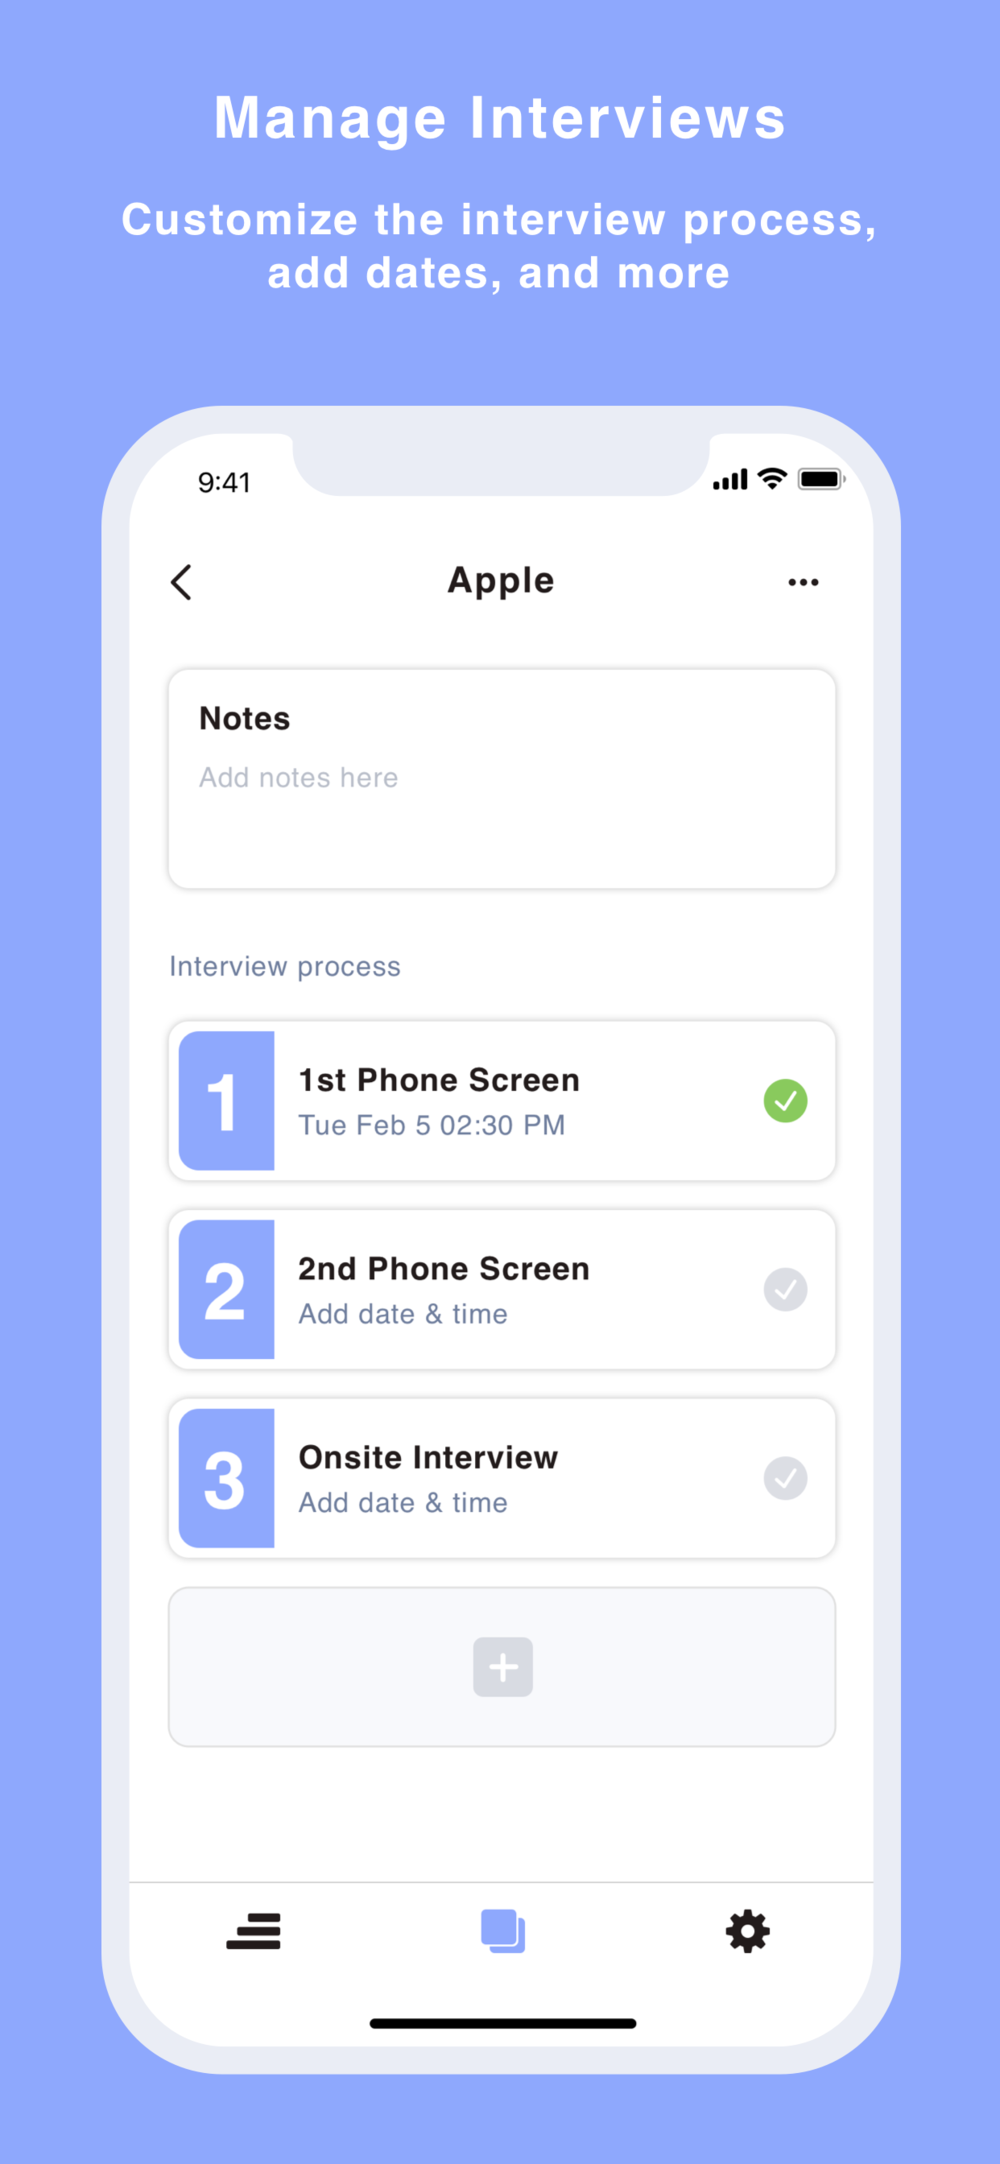 App Store - Manage Interviews.png